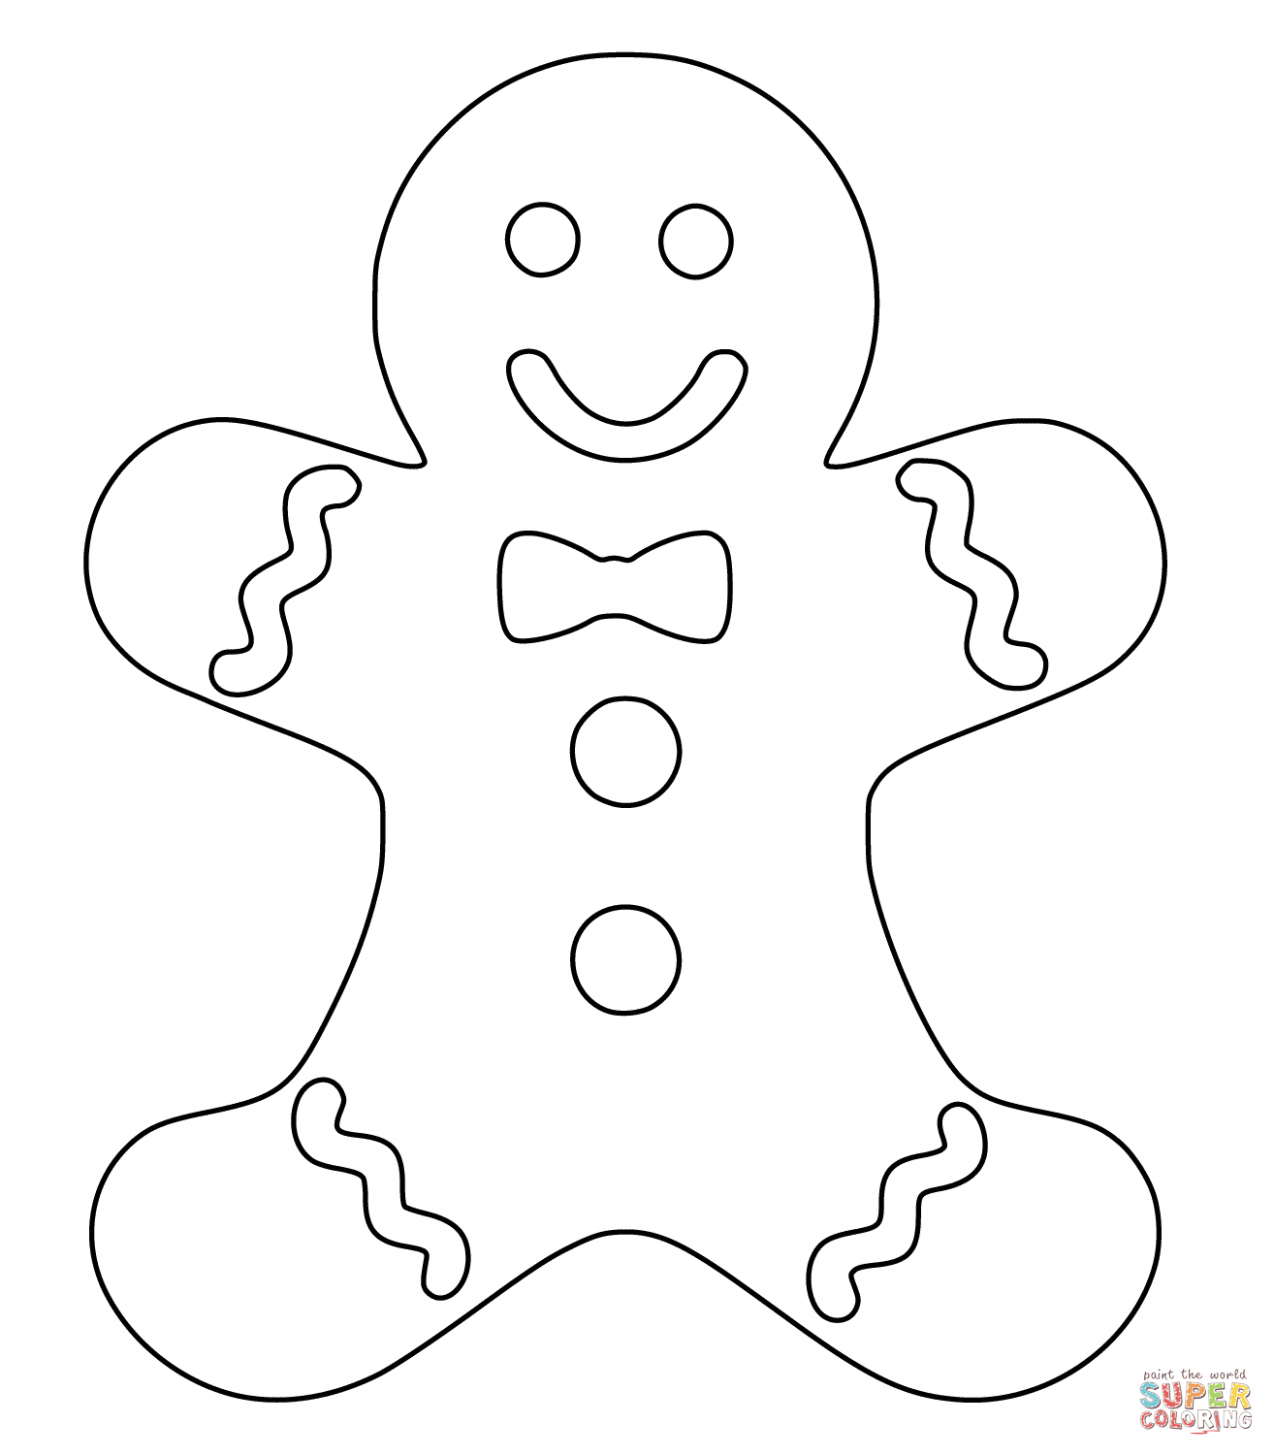 Christmas Gingerbread Man coloring page | Free Printable Coloring Pages – Free Christmas Coloring Pages Gingerbread Man